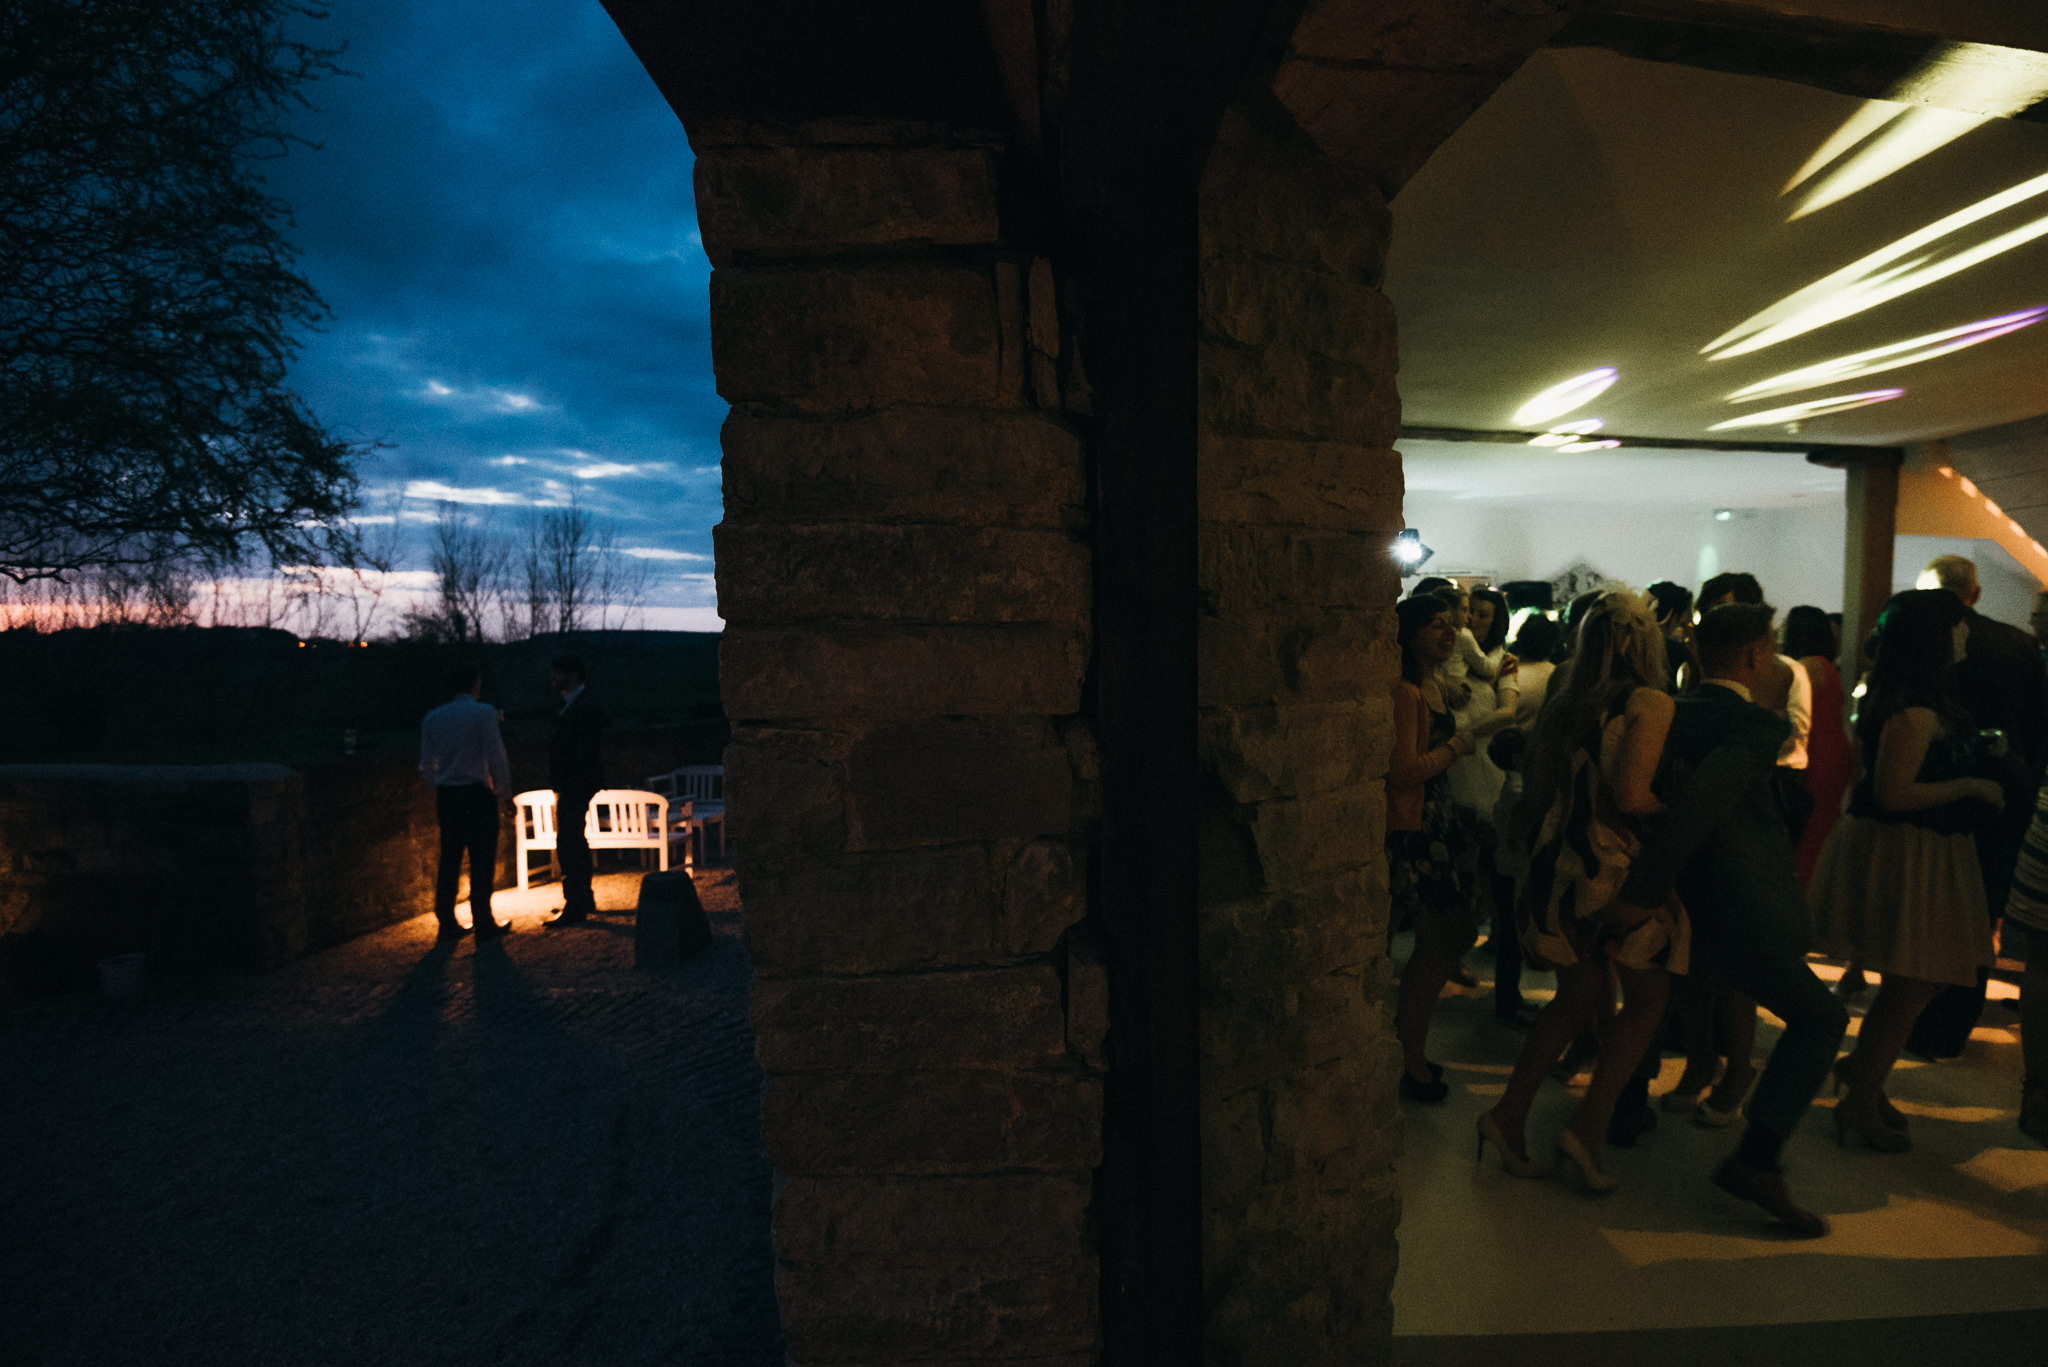 night falls at Almonry barn wedding